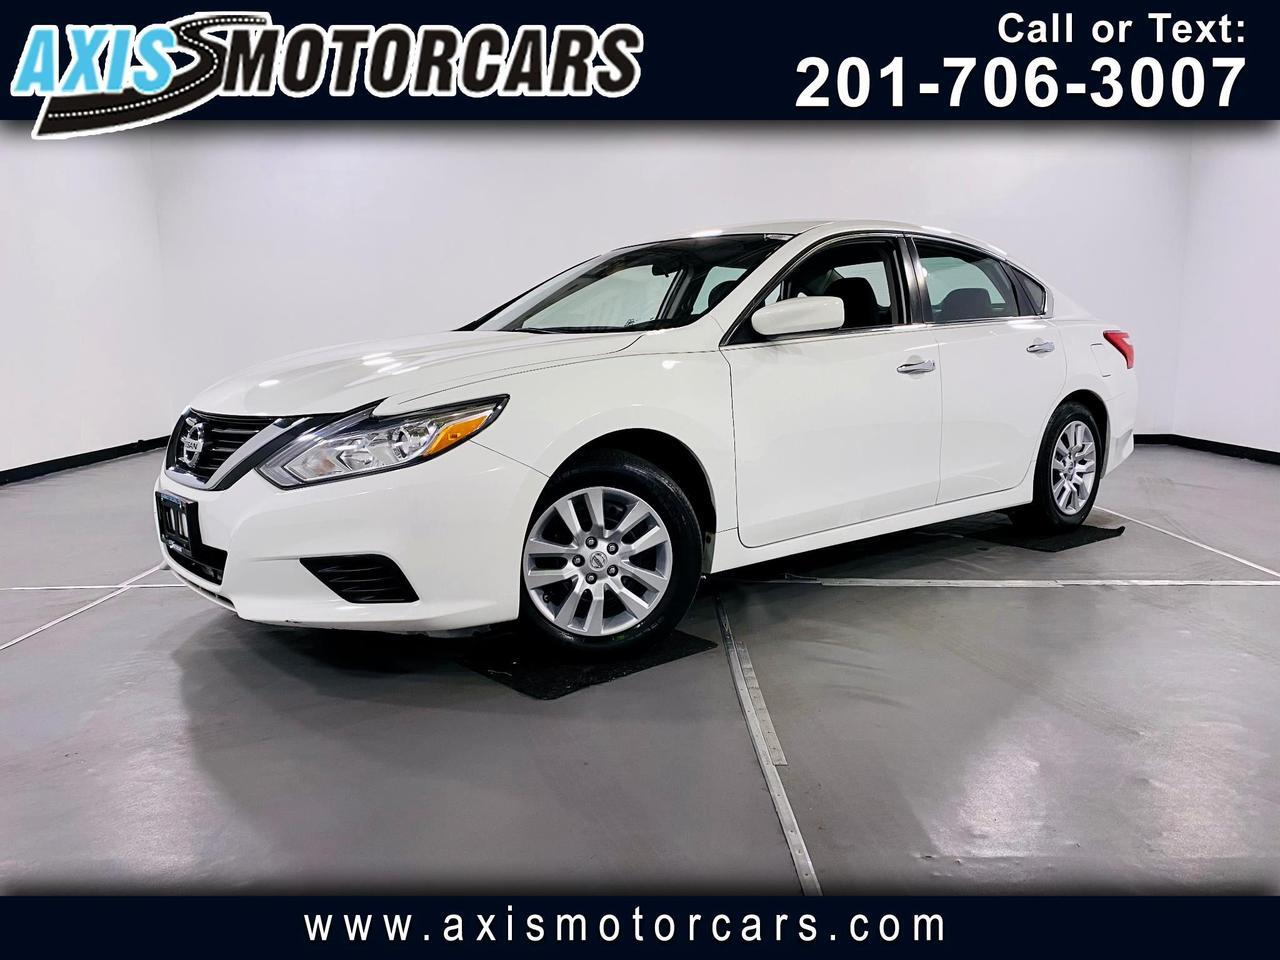 2016 Nissan Altima 4dr Sdn 2.5 w/Backup Camera Jersey City NJ